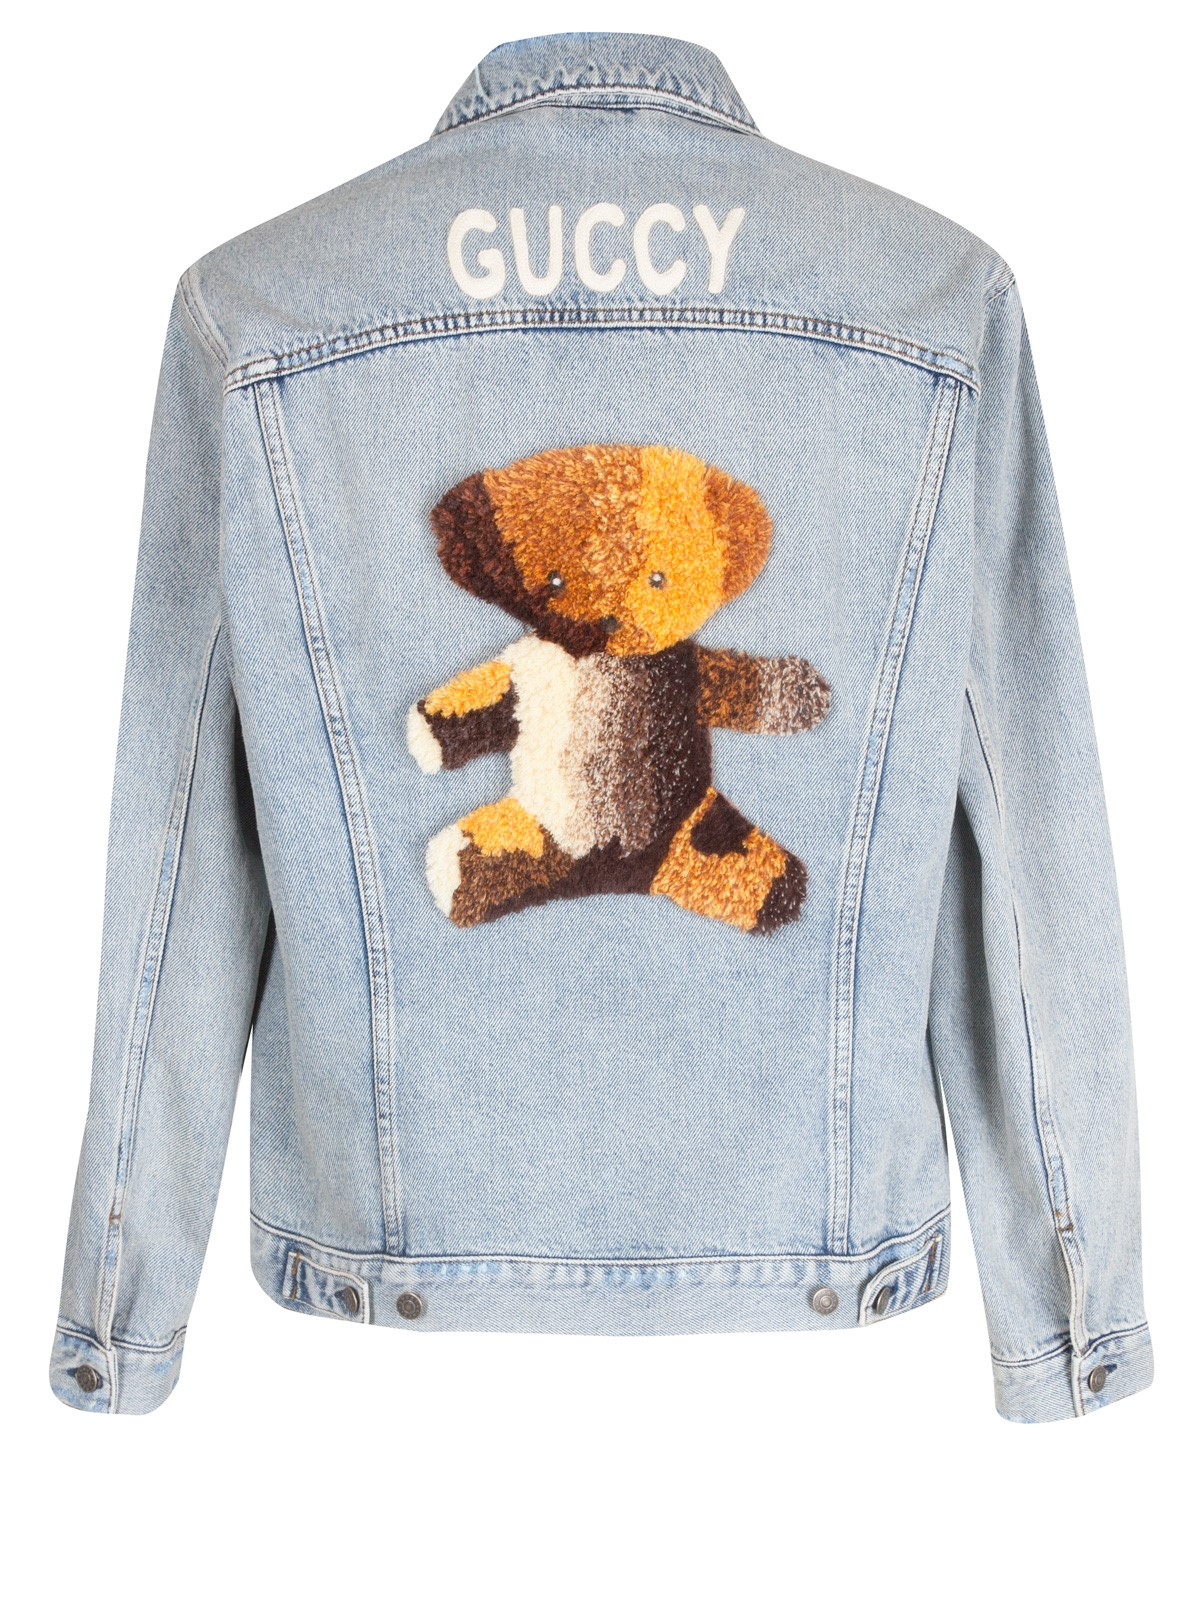 Discover best collection exclusive deals TEDDY BEAR DENIM JACKET